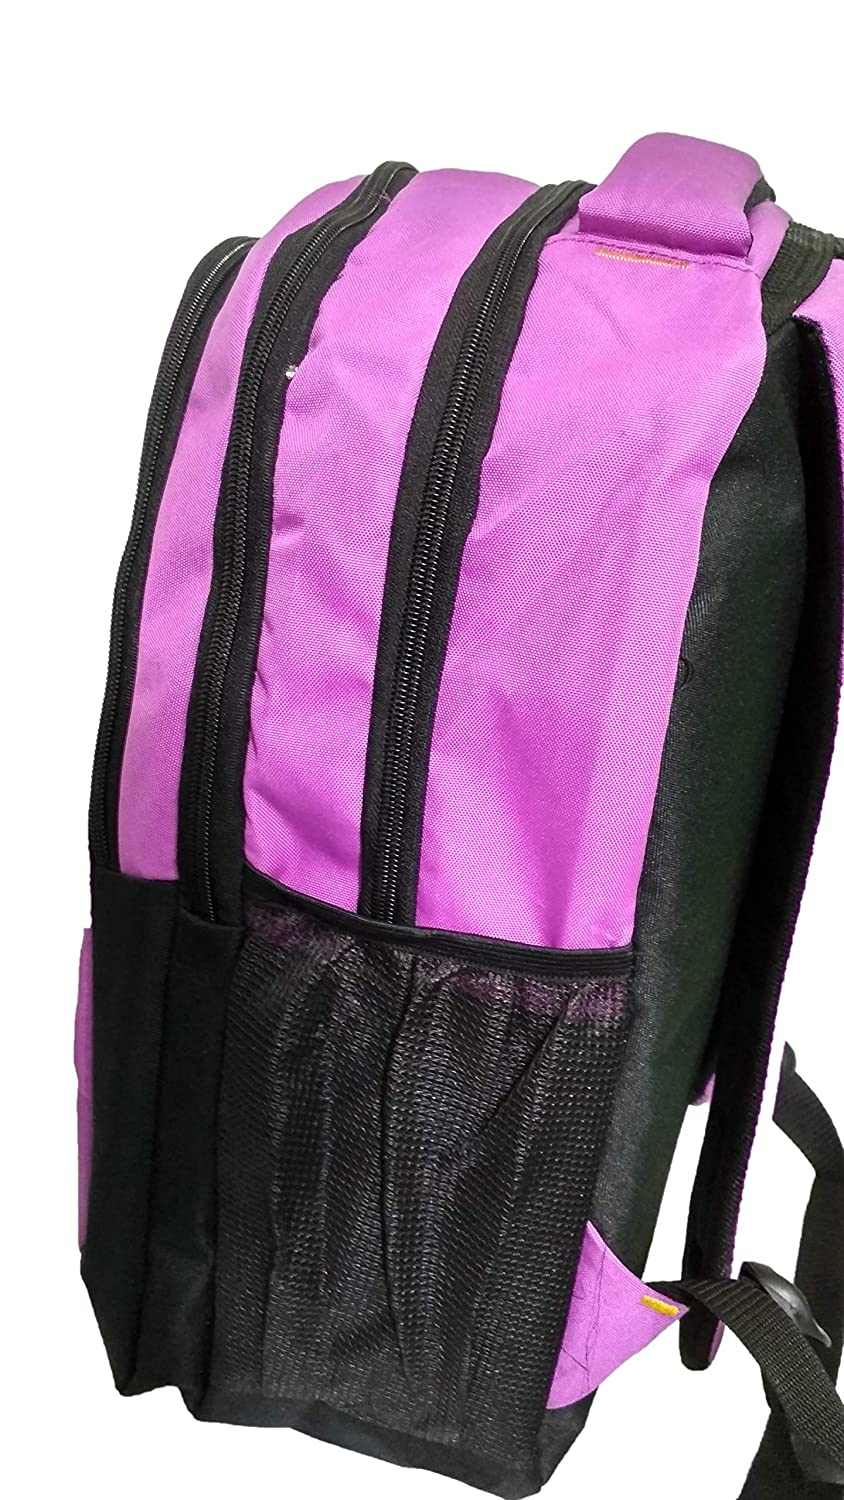 df8778fb0f 4B S College Bags Laptop Backpack 15 Inch Backpack College Backpack Casual  Used Backpack Office Bags Light Weight Bags Multi-Purpose Bags Stylish  Backpacks ...